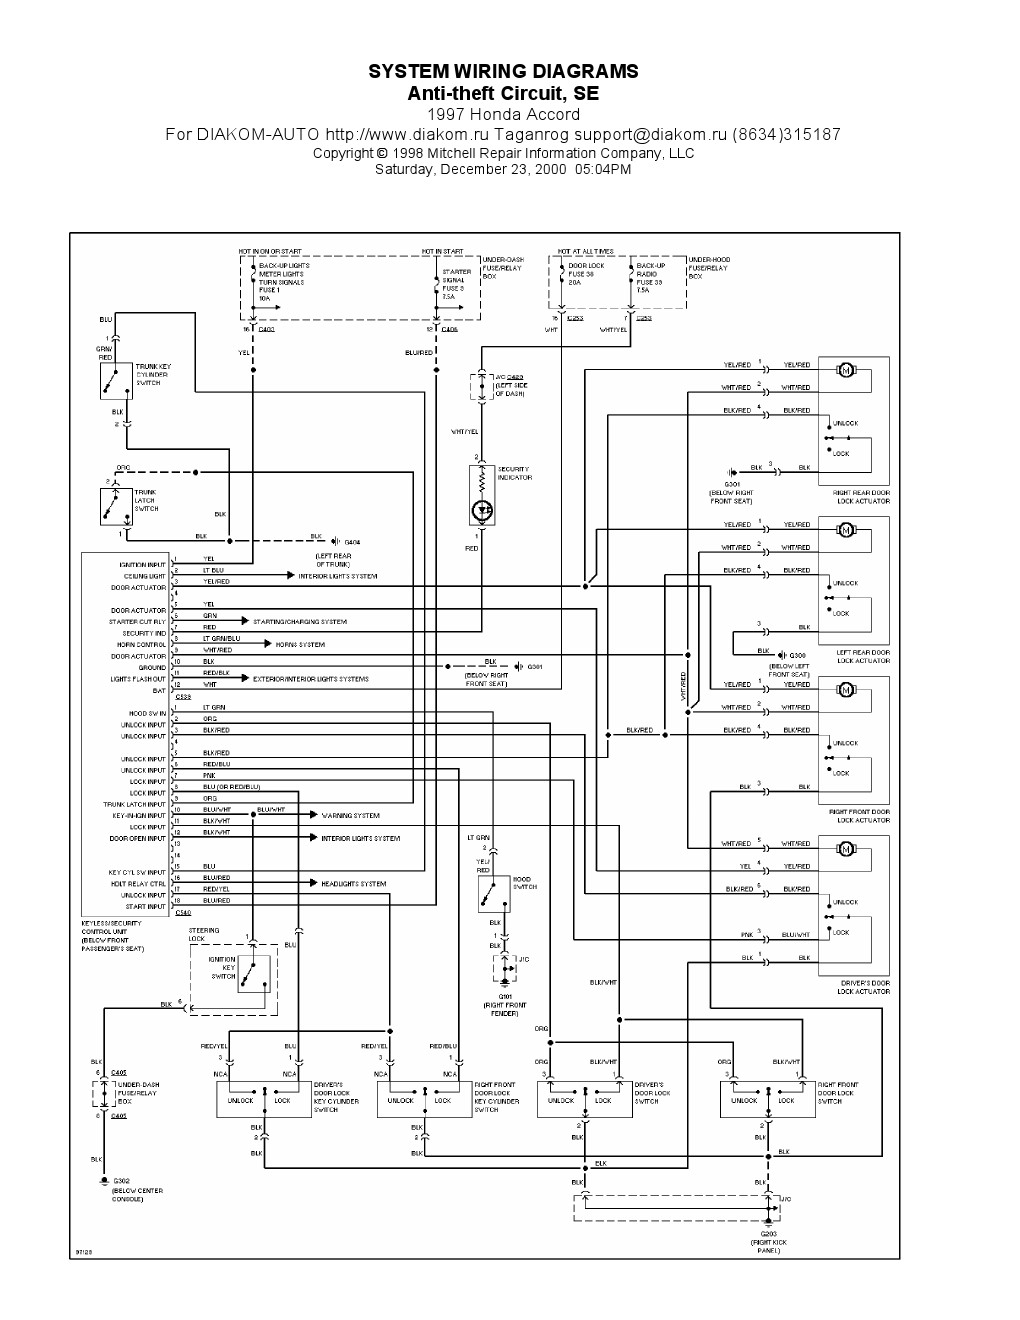 1997 Honda Accord Wiring System - 1956 Continental Window Motor Wiring  Diagram for Wiring Diagram SchematicsWiring Diagram Schematics